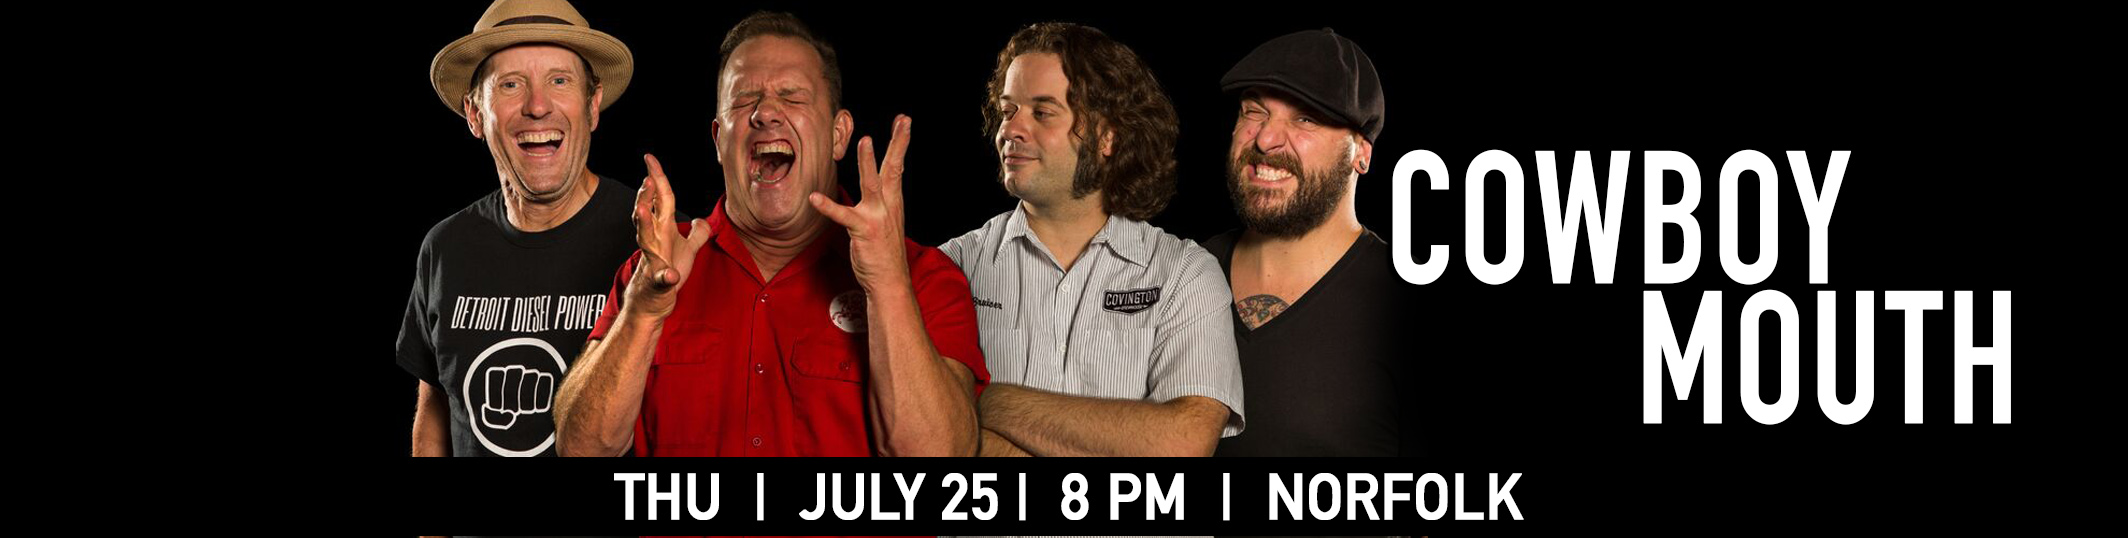 Cowboy Mouth_JUL 25 2019